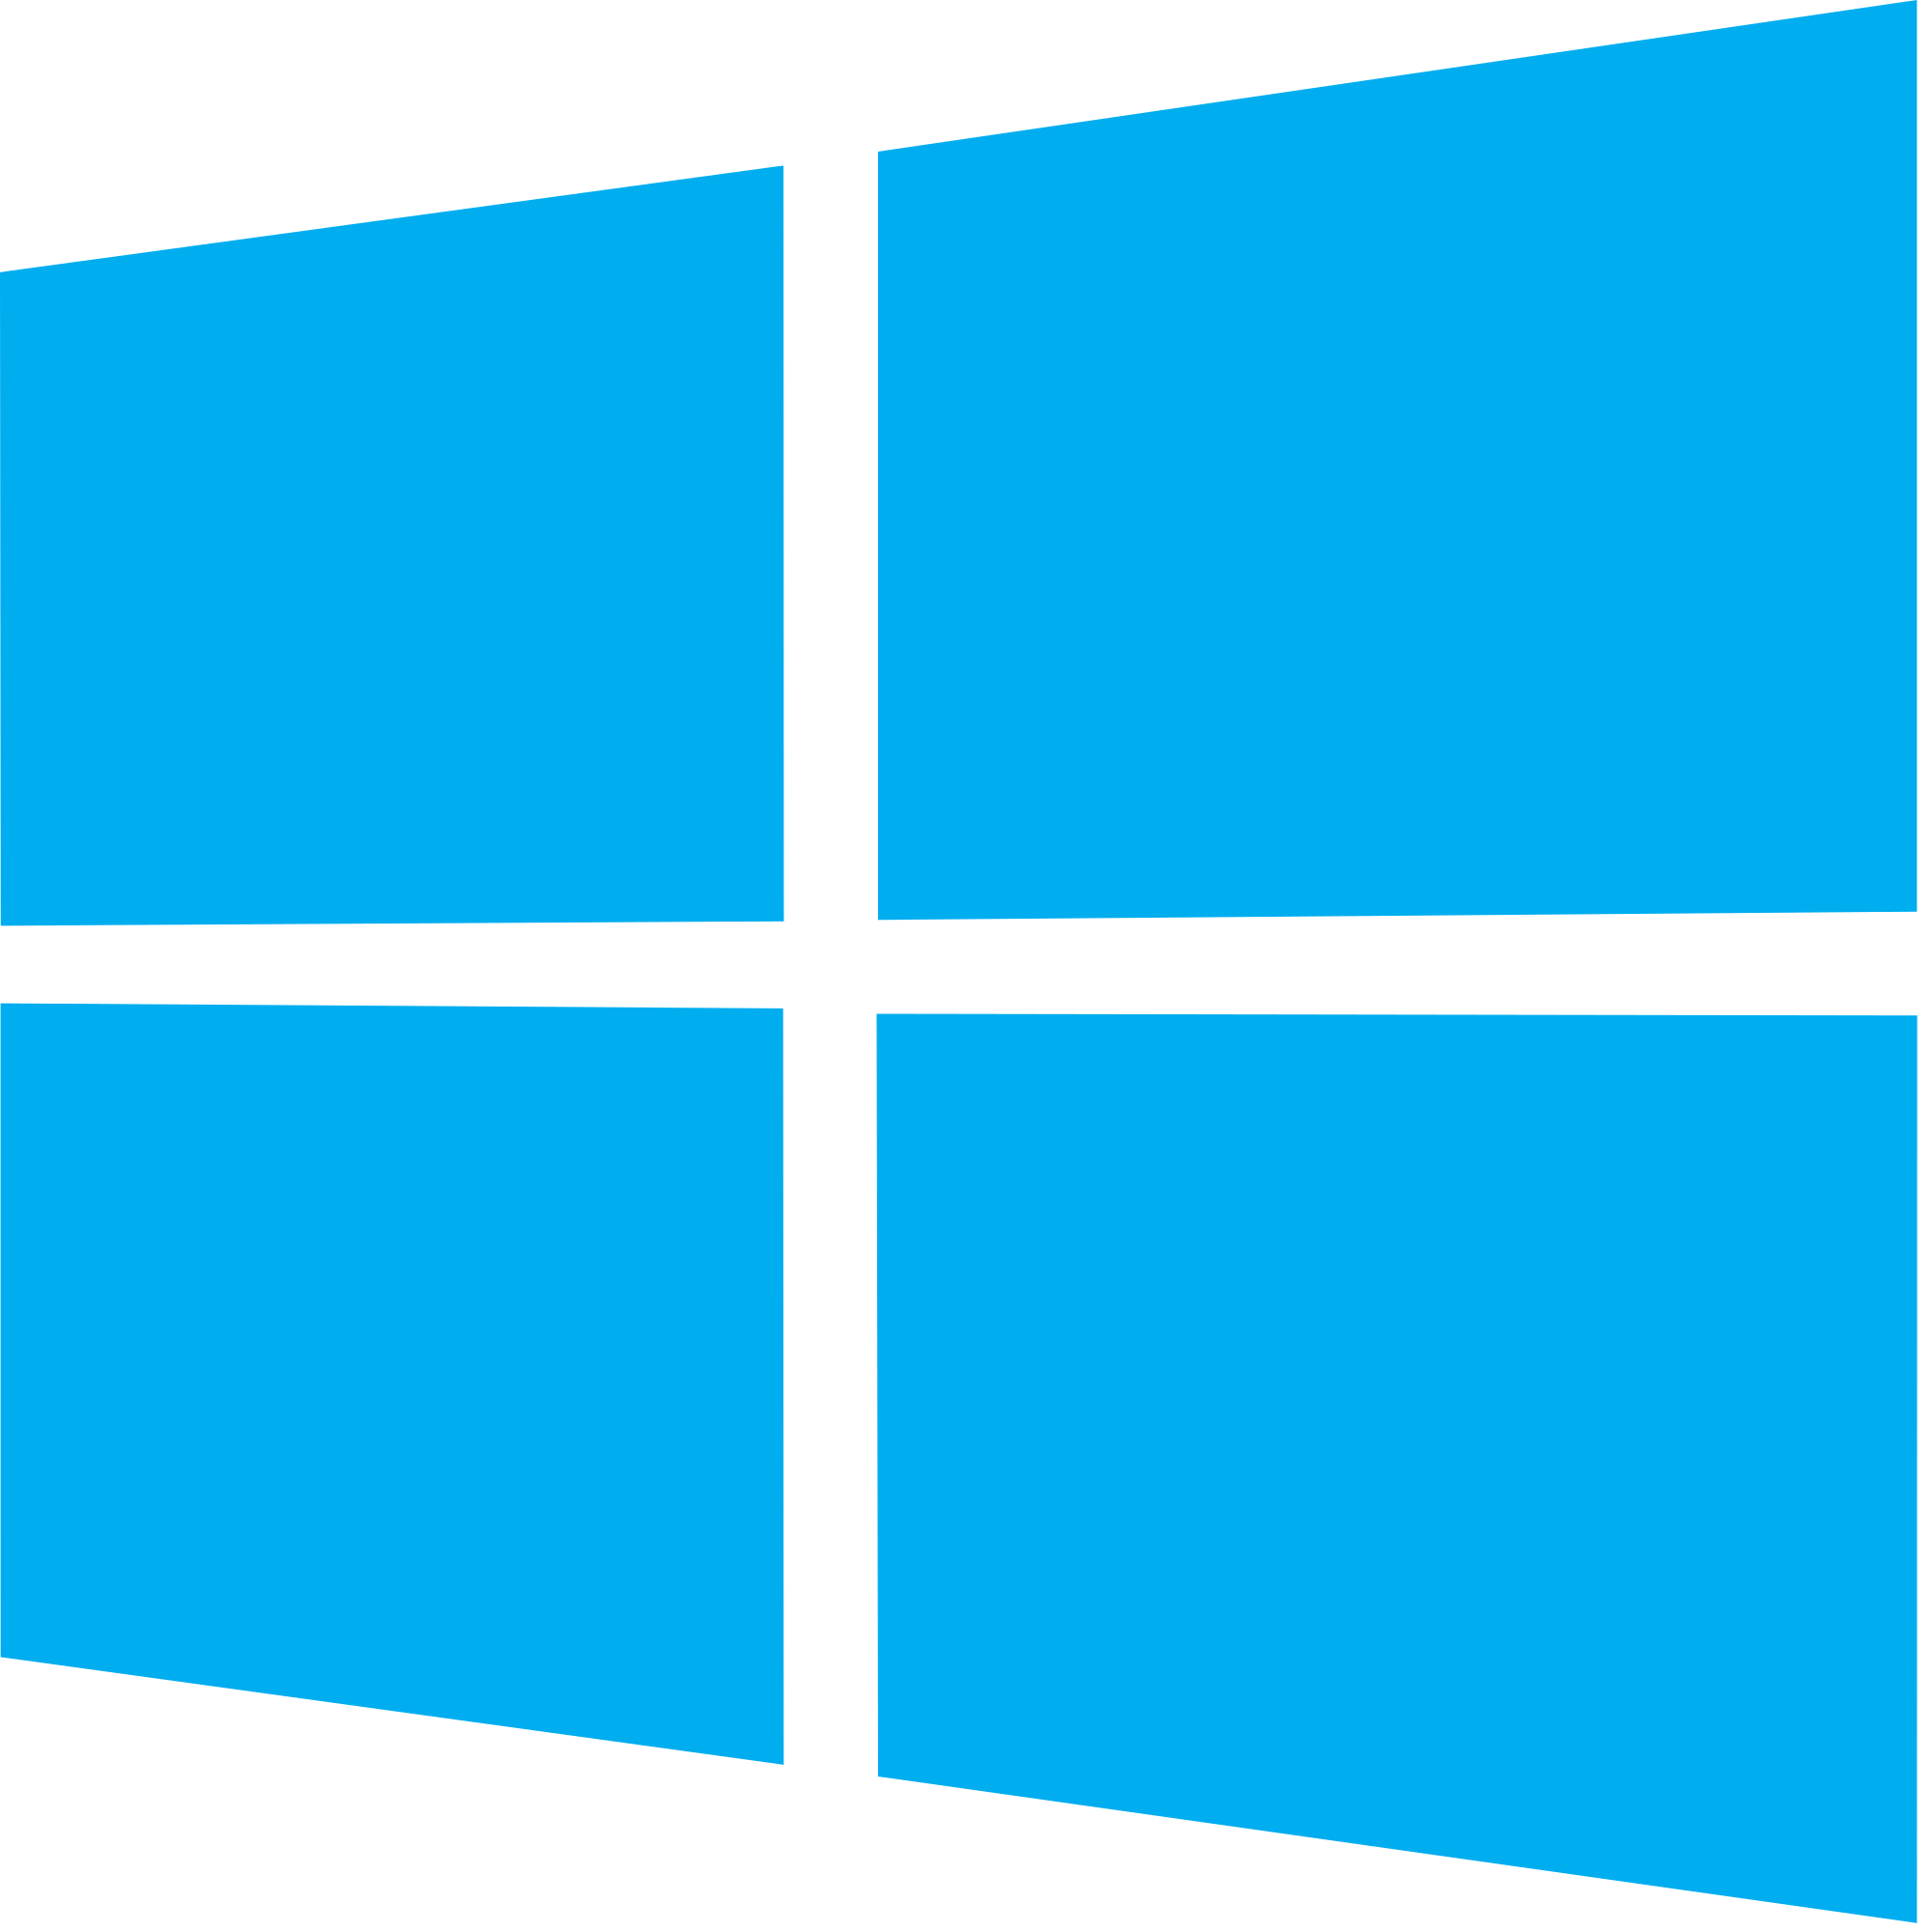 Eliminating microsoft part windows. Win clipart square window